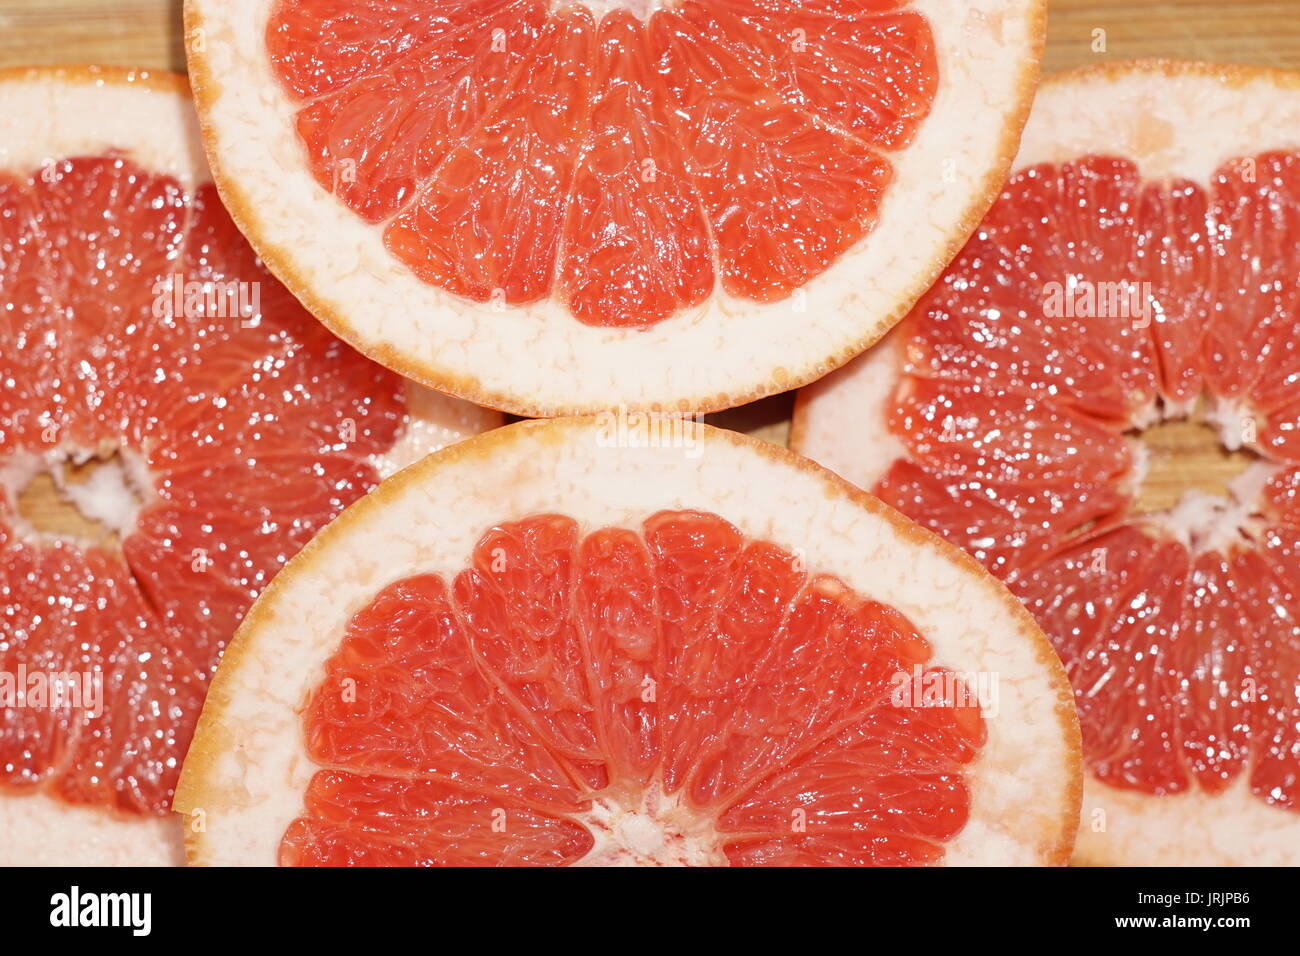 Grapefruit cut on slices and arranged on wooden plate shining from reflected light - Stock Image